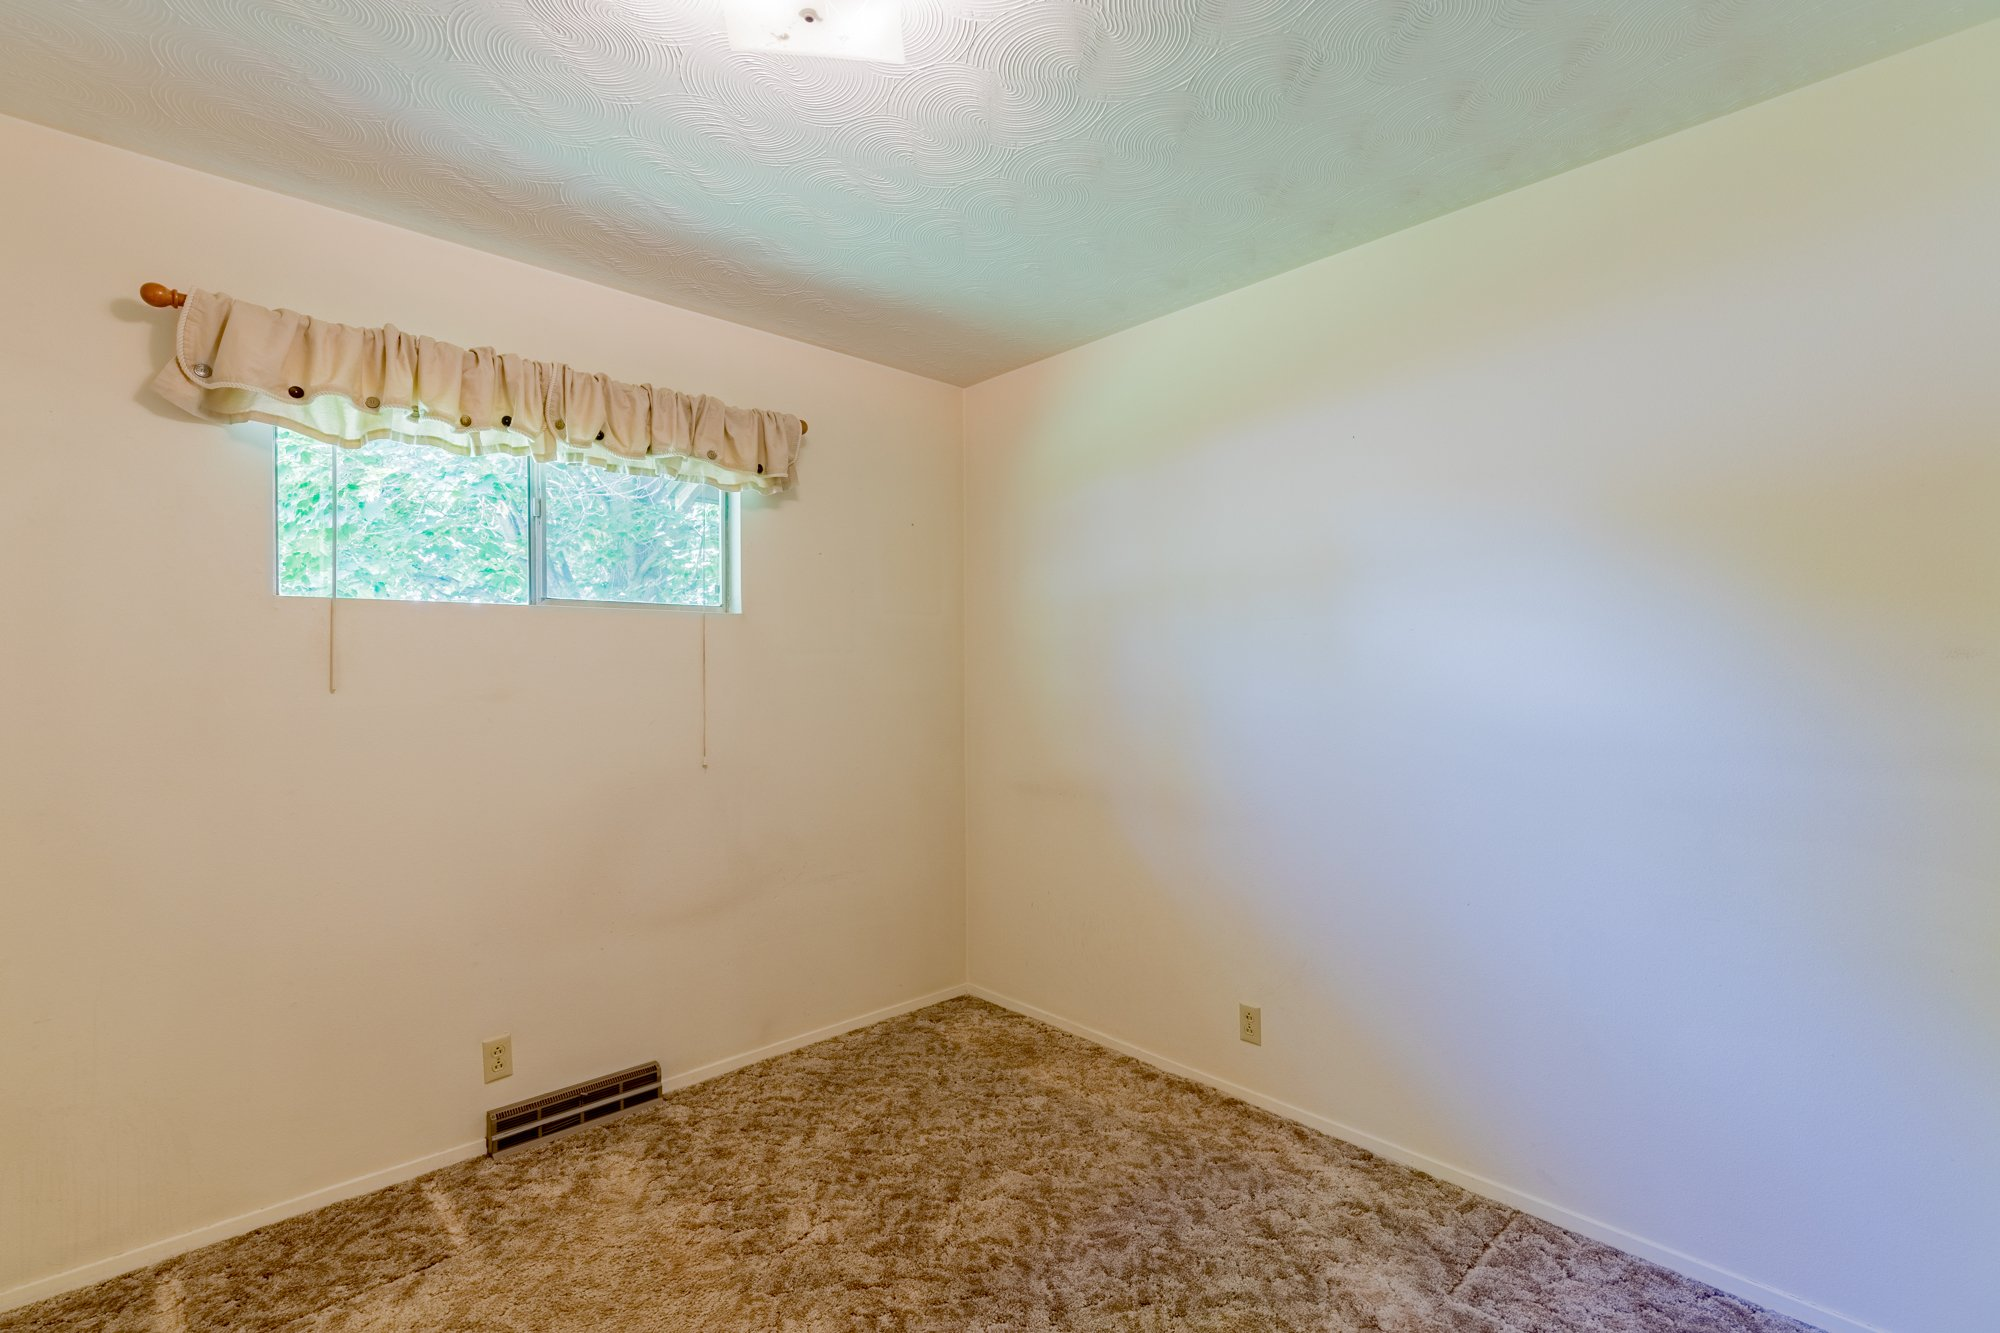 Small bedroom with window - 418 6400 Rd Montrose, CO 81403 - Atha Team Realty